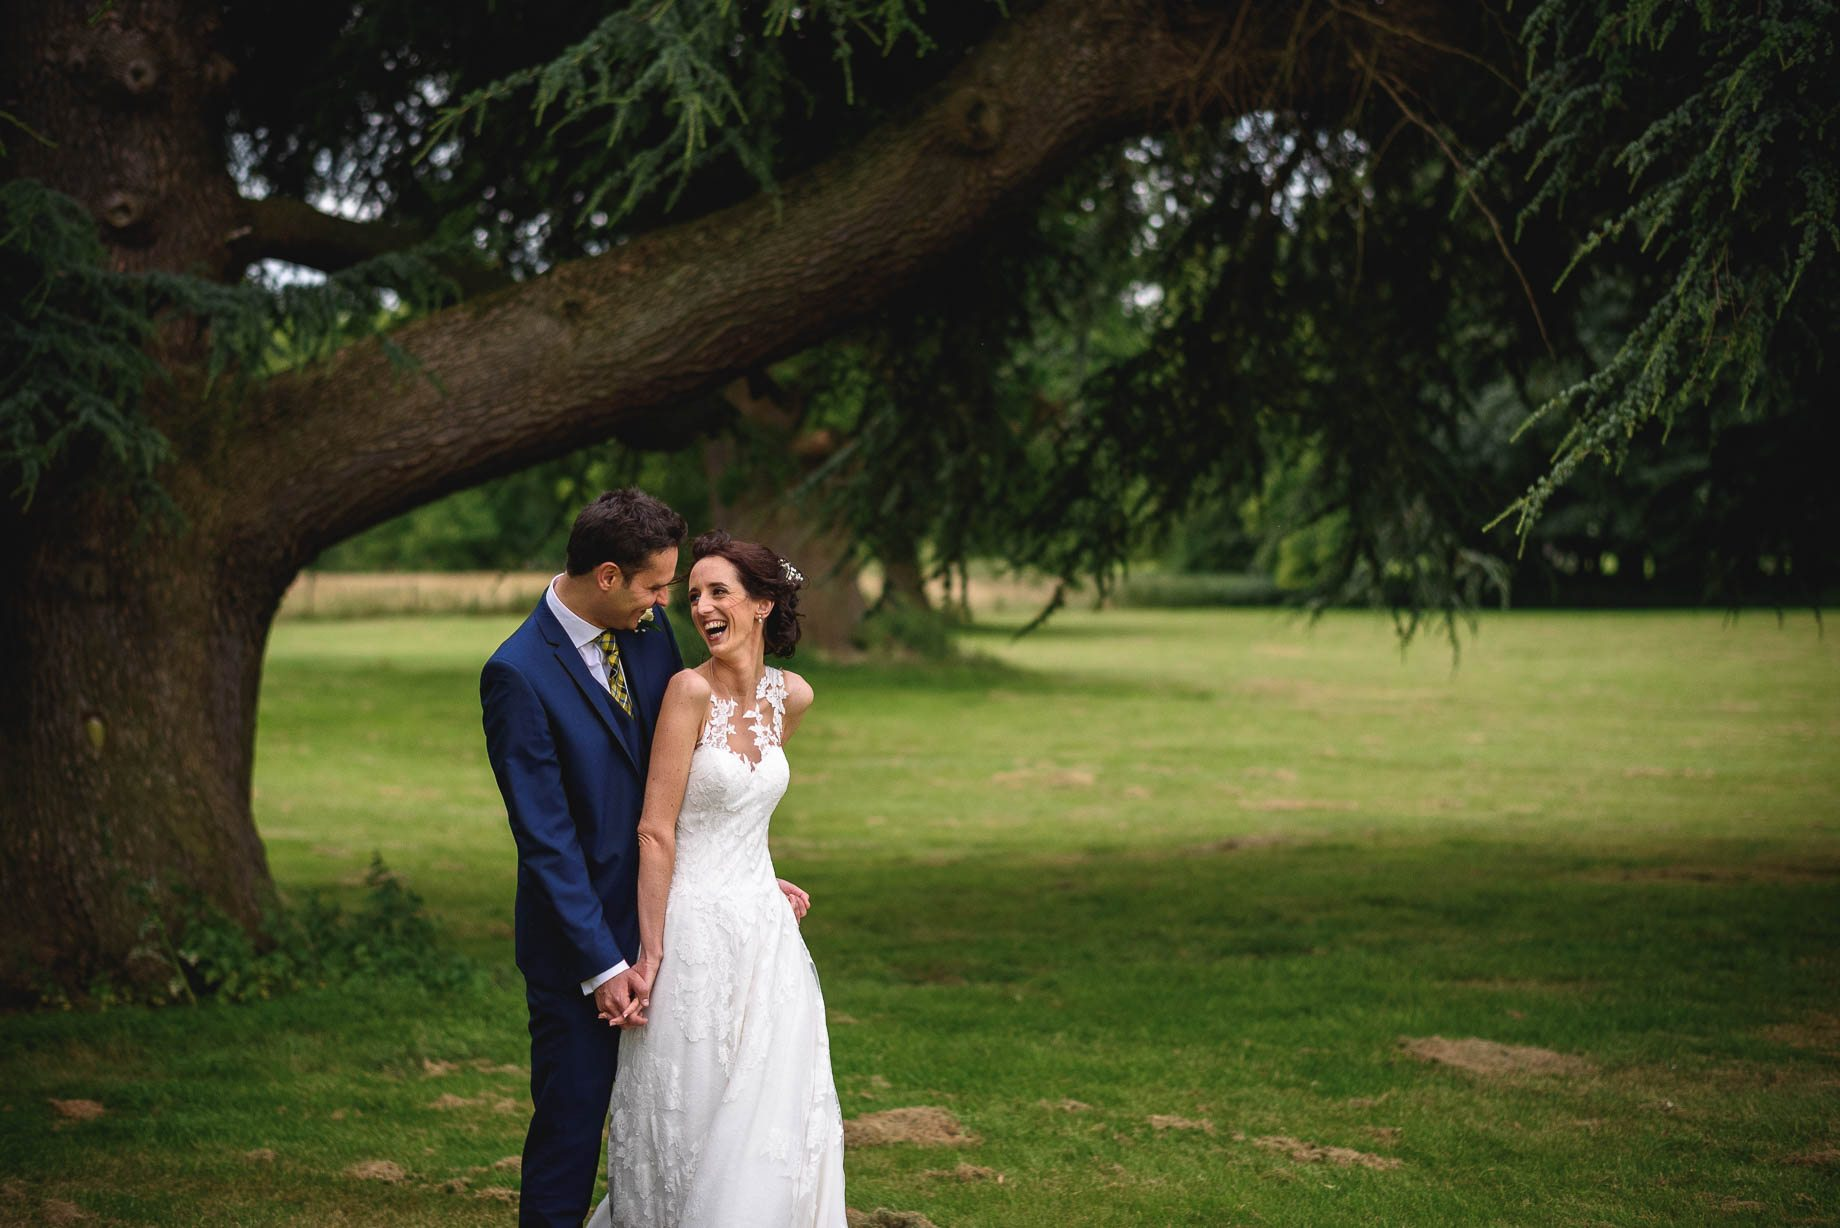 Hertfordshire wedding photography - Sarah and Stephen by Guy Collier Photography (144 of 161)